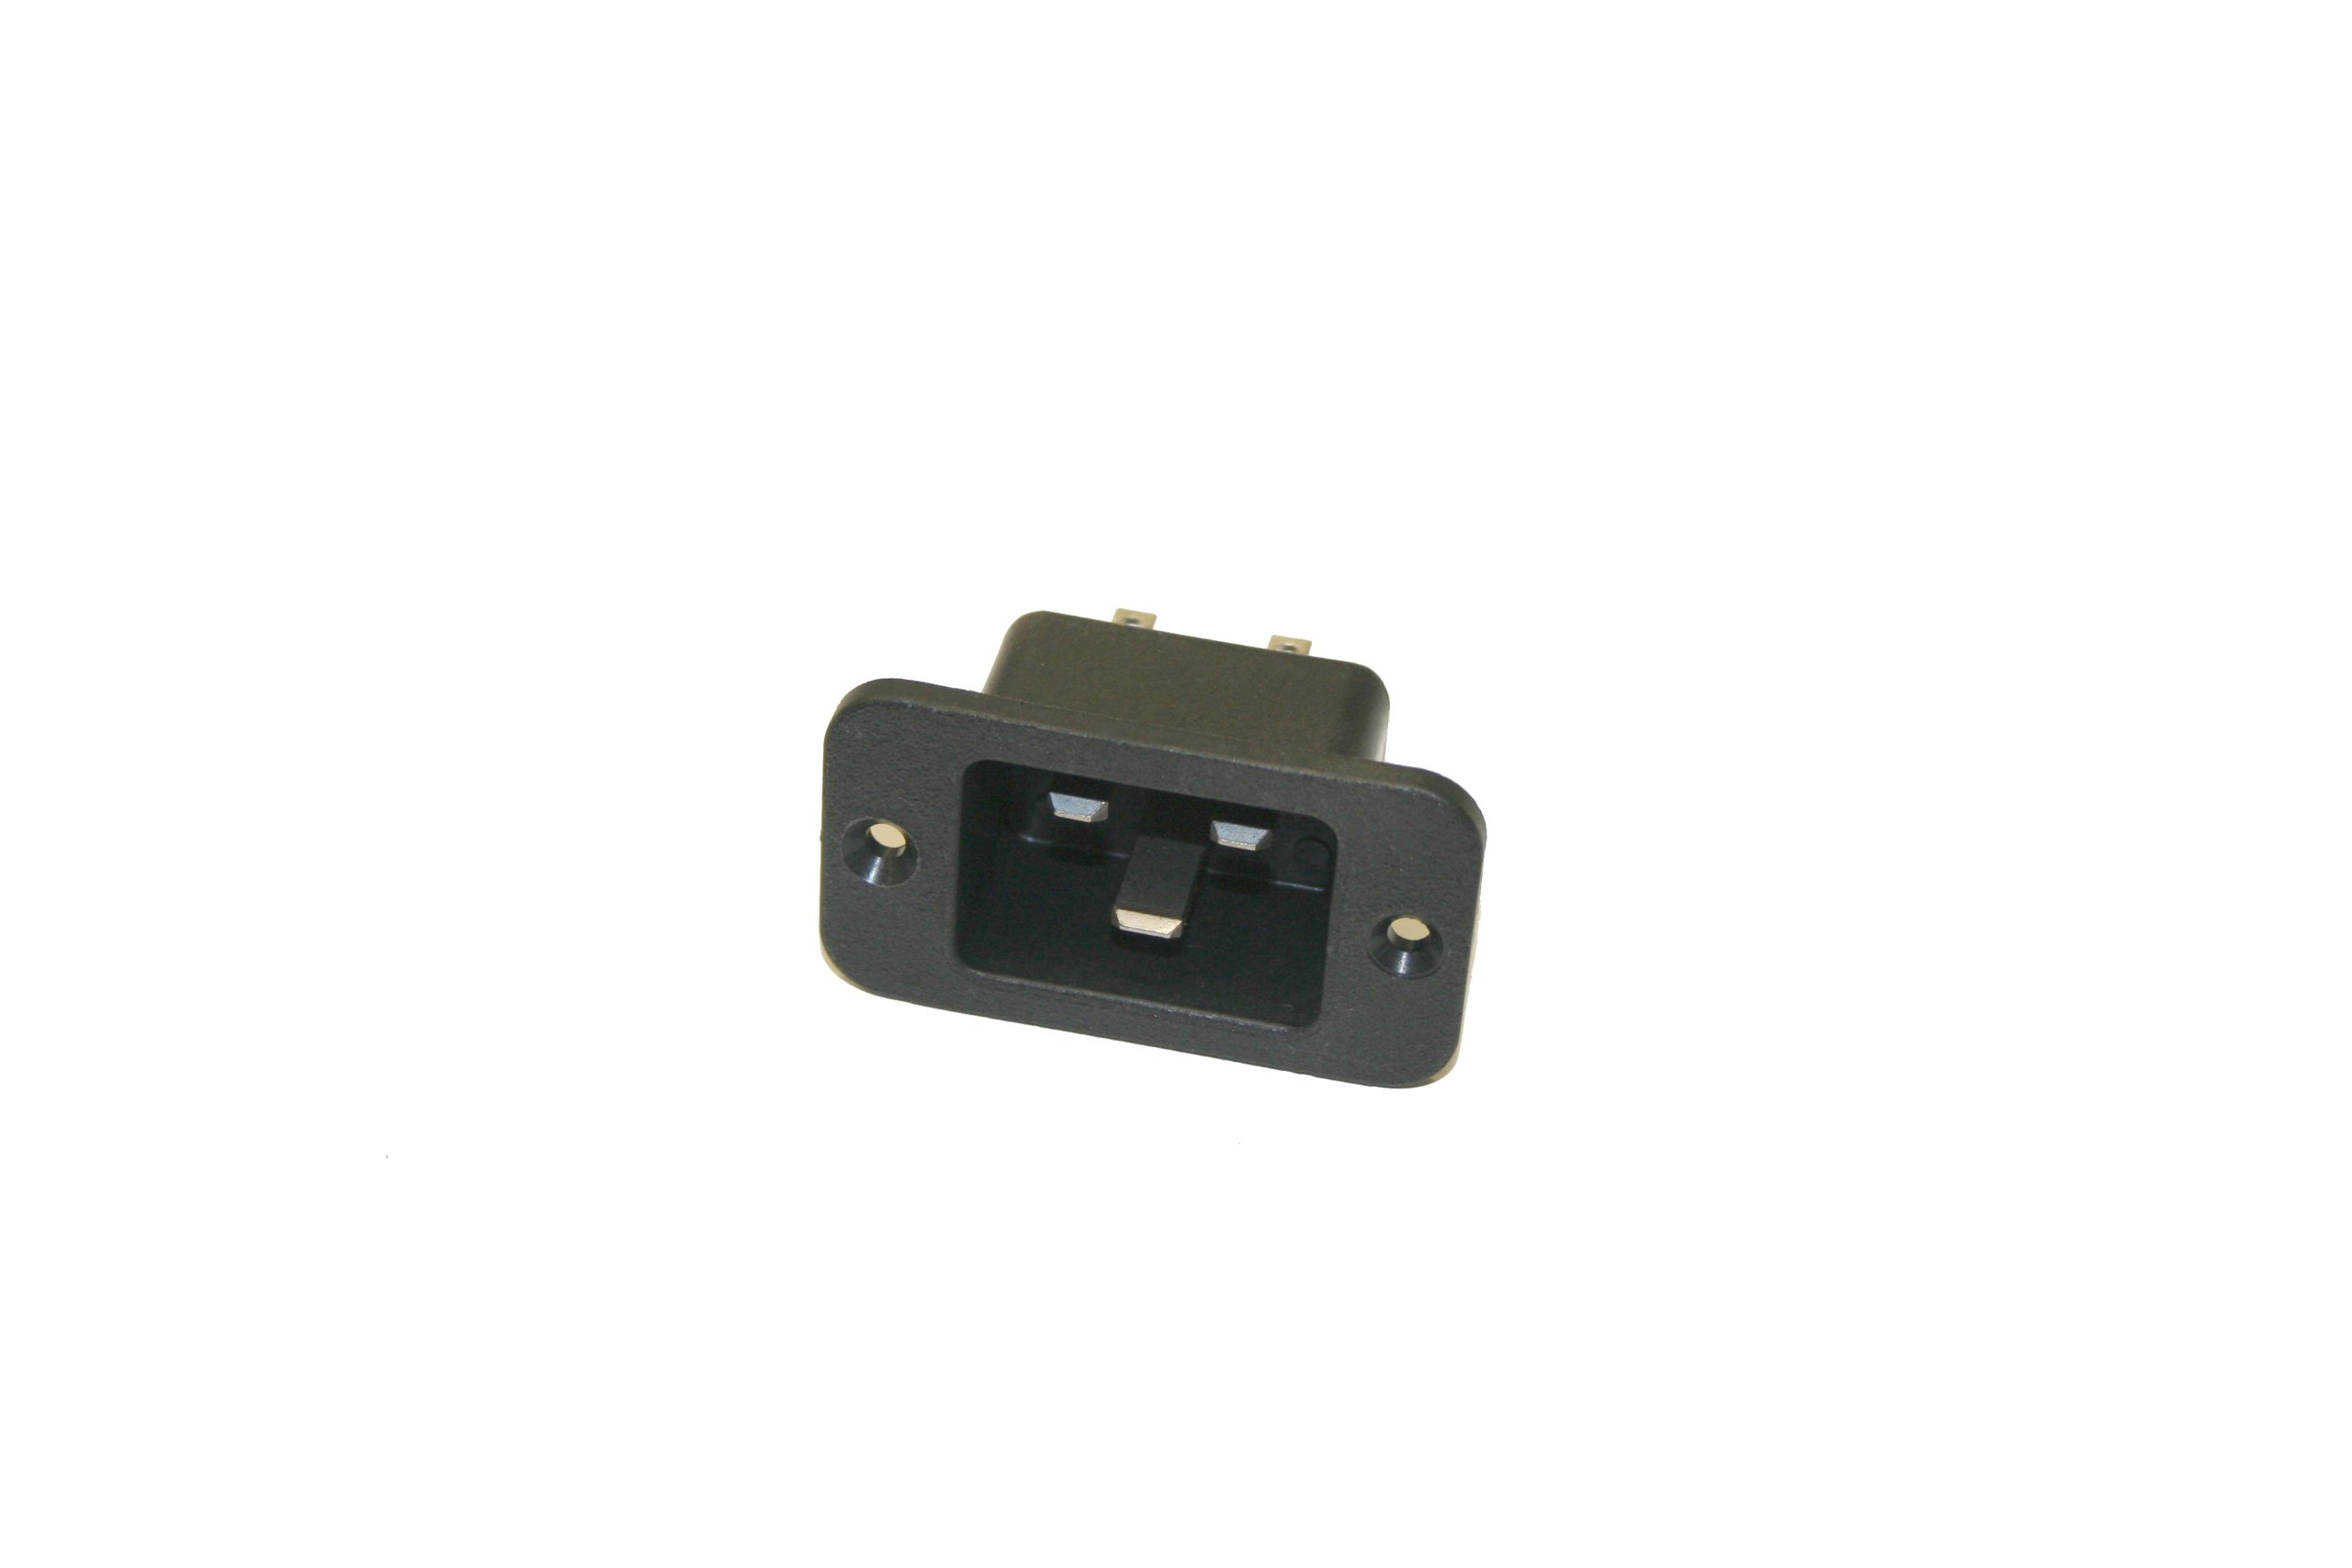 Interpower 83030410 IEC 60320 C20 Power Inlet With Solder Tabs, IEC 60320 C20 Socket Type, Black, 16A/20A Rating, 250VAC Rating